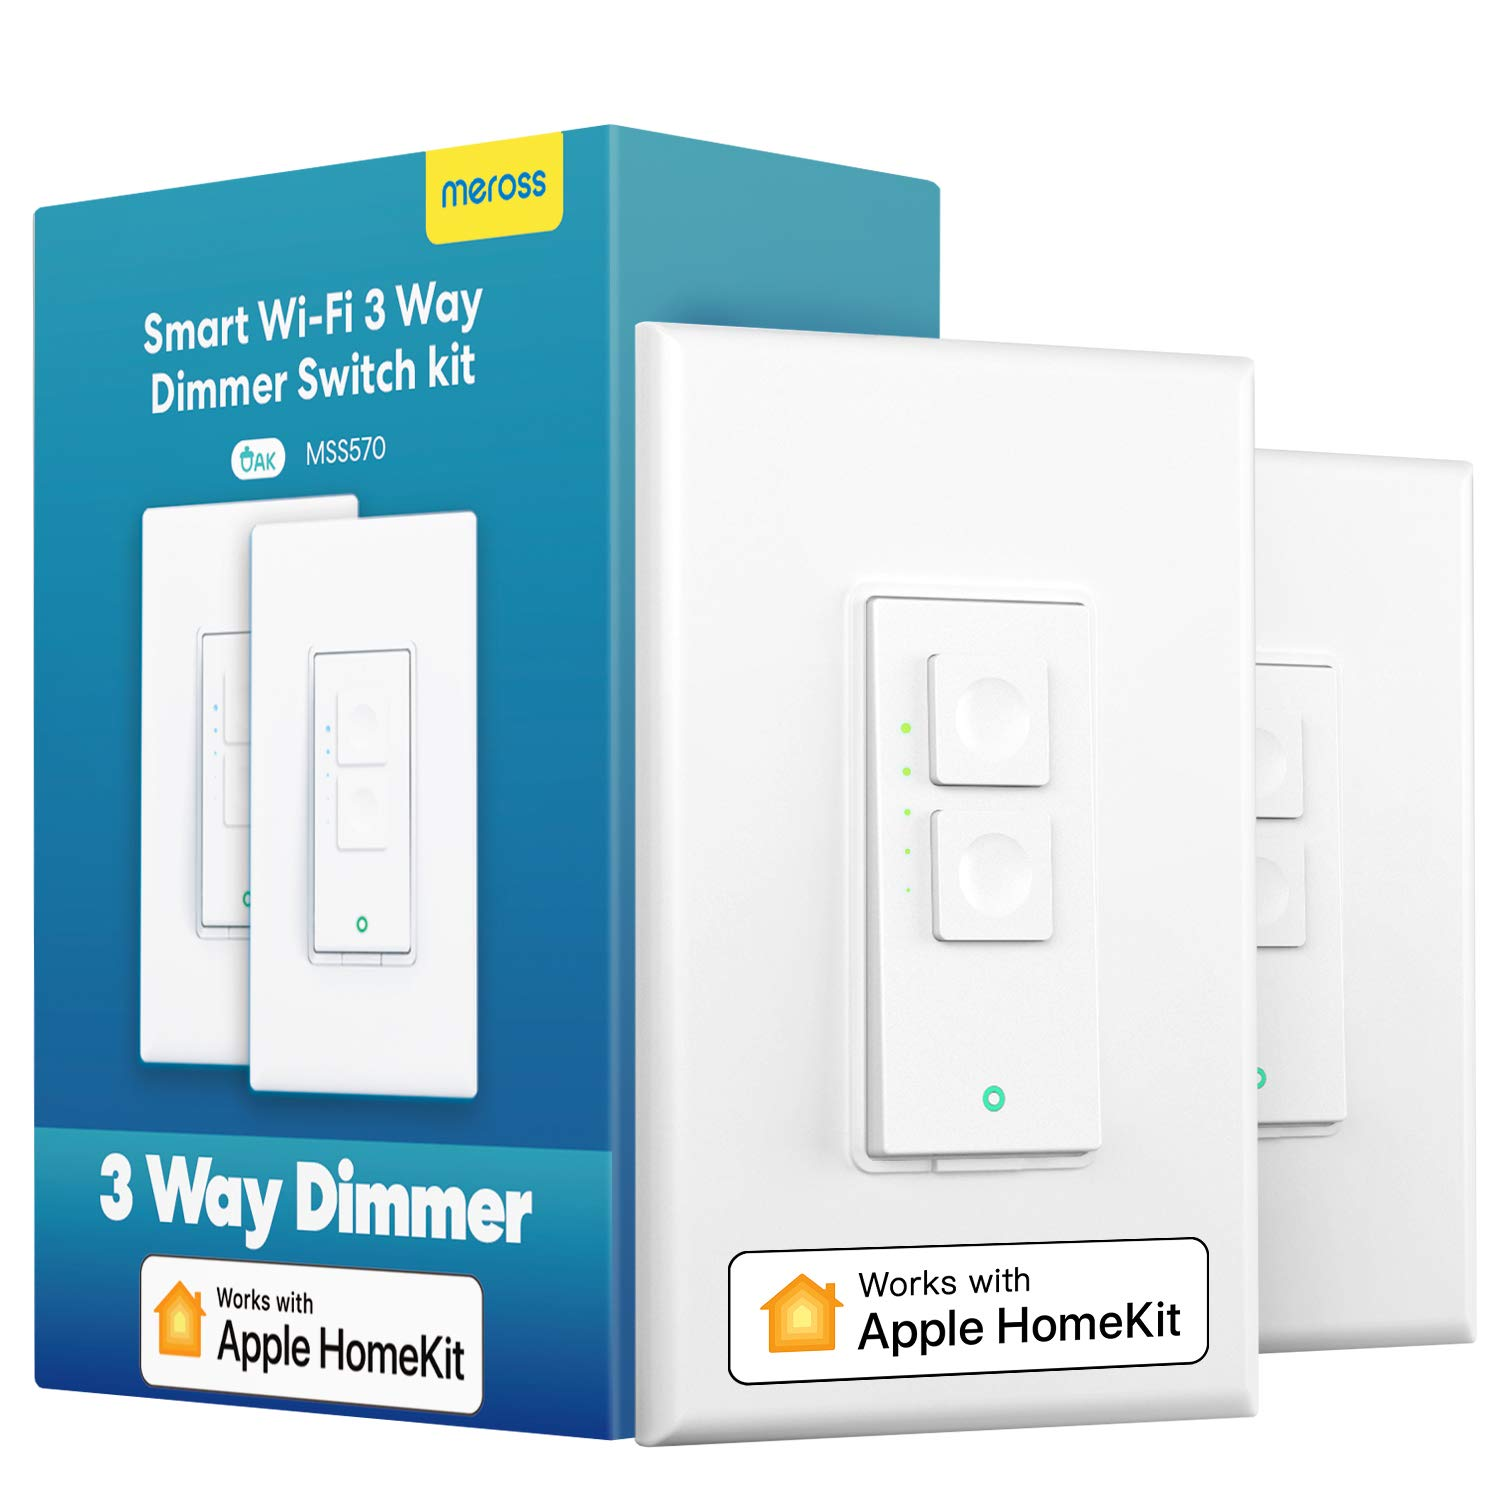 3 Way Smart dimmer Switch Kit, Meross Smart Light Switch Supports Apple HomeKit, Siri, Alexa, Google Assistant & SmartThings, 2.4GHz Wi-Fi Light Switch, Neutral Wire Required, Remote Control Schedule